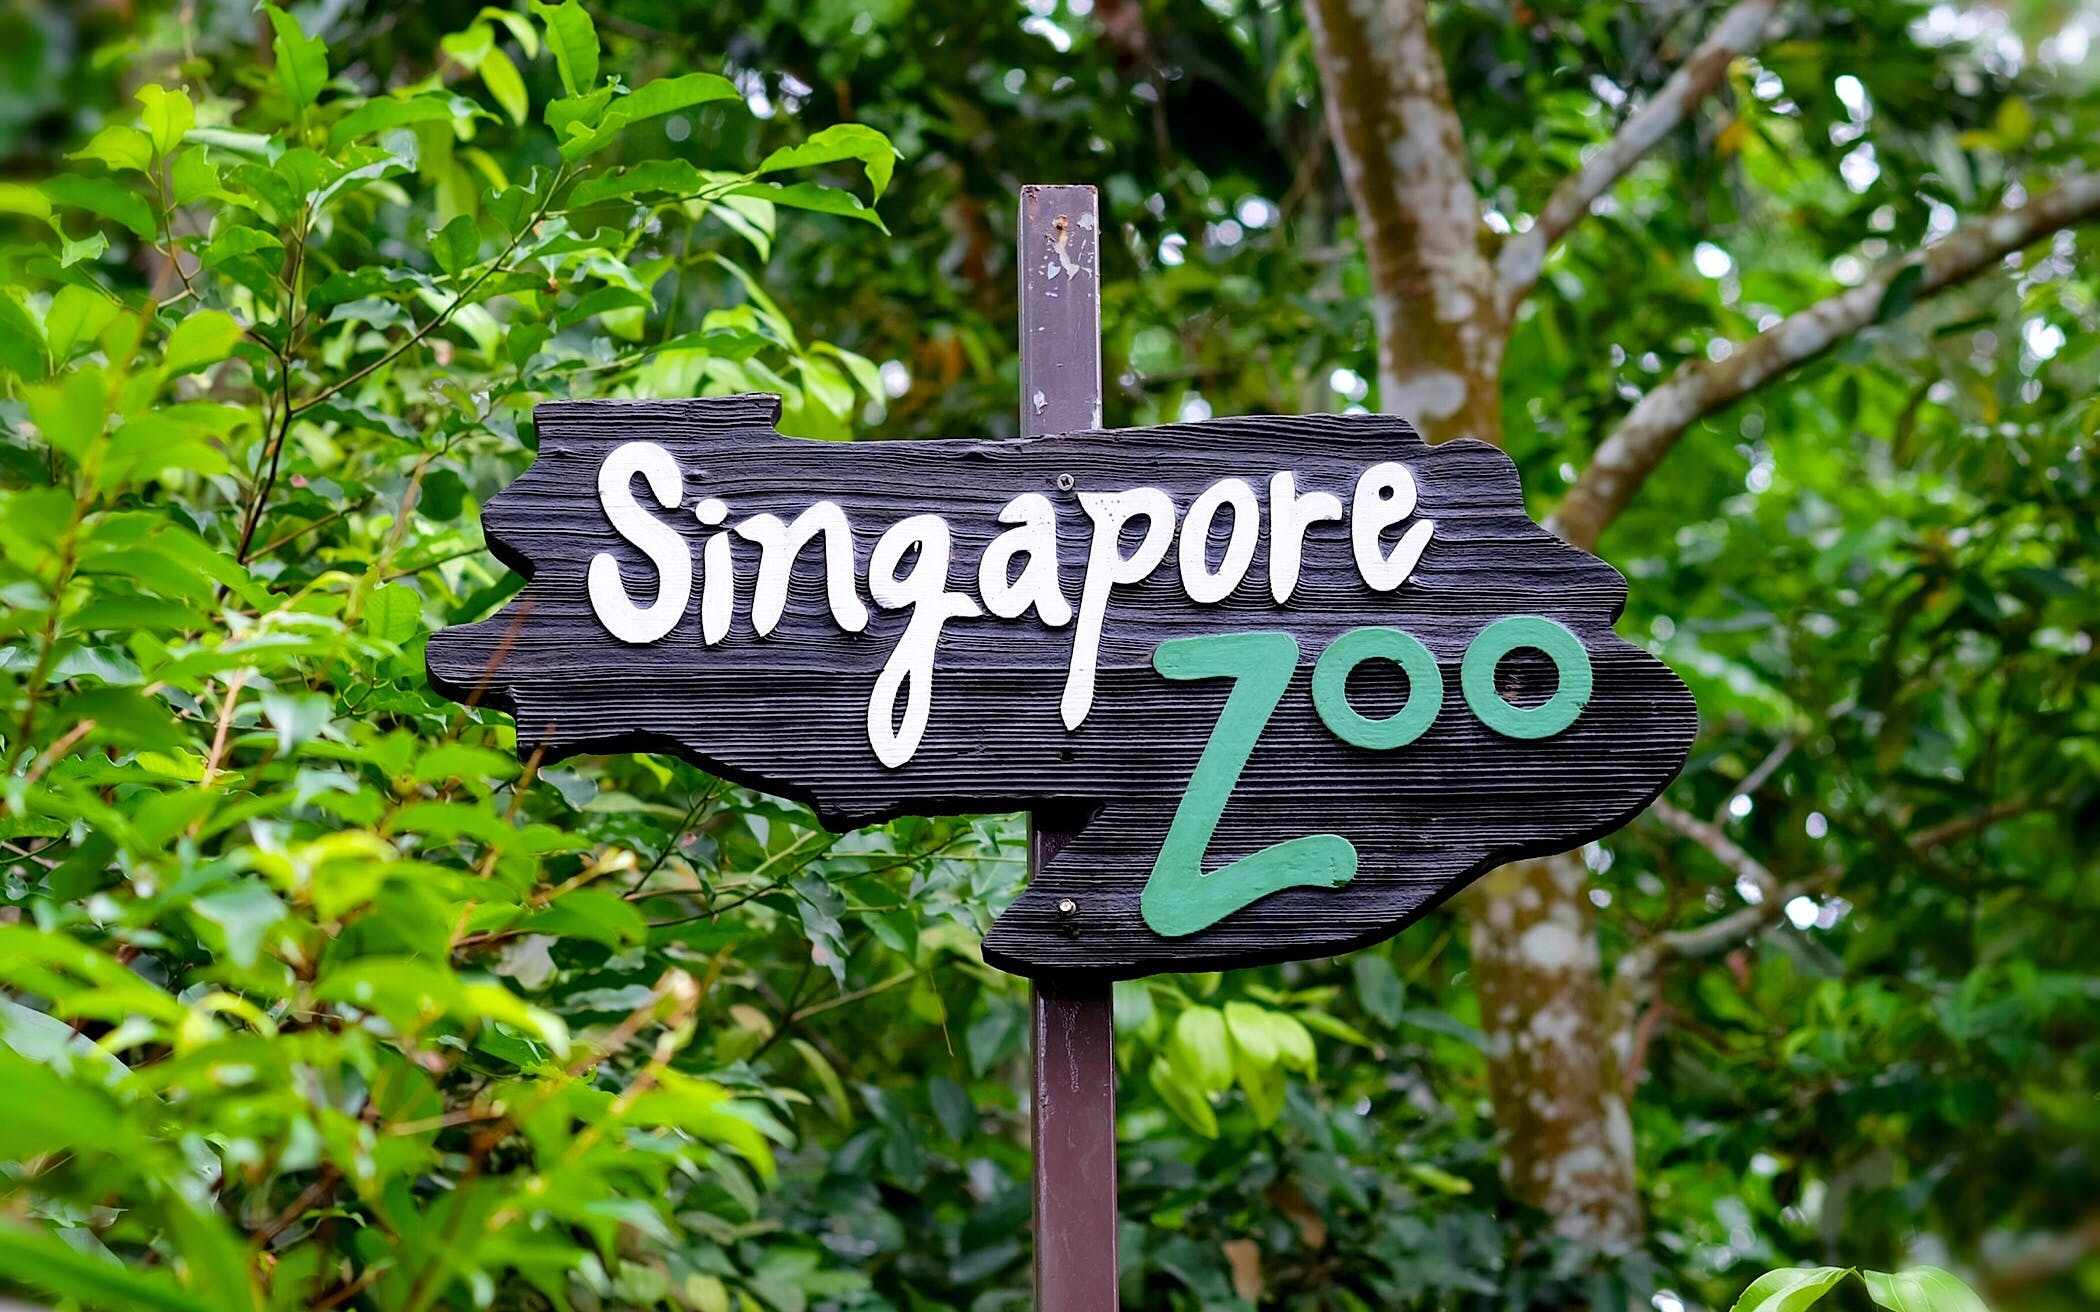 Sinpore Deals & Offers - Singapore Zoo